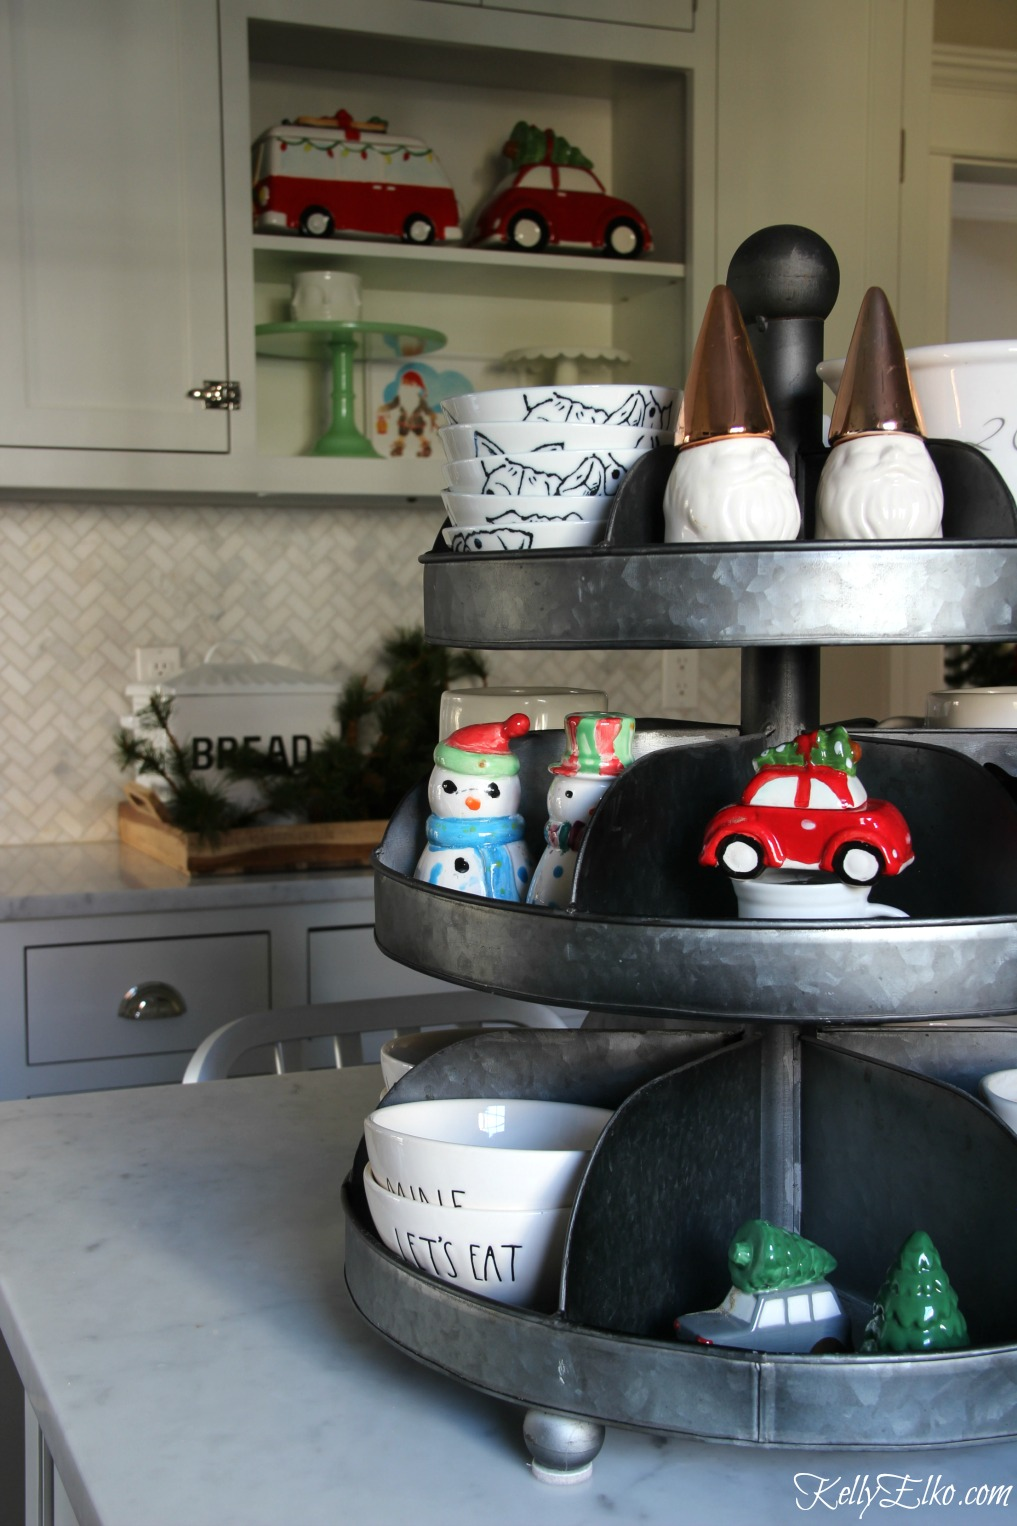 Christmas Kitchen - love this galvanized tiered tray for displaying everyday items and Christmas salt and pepper shakers kellyelko.com